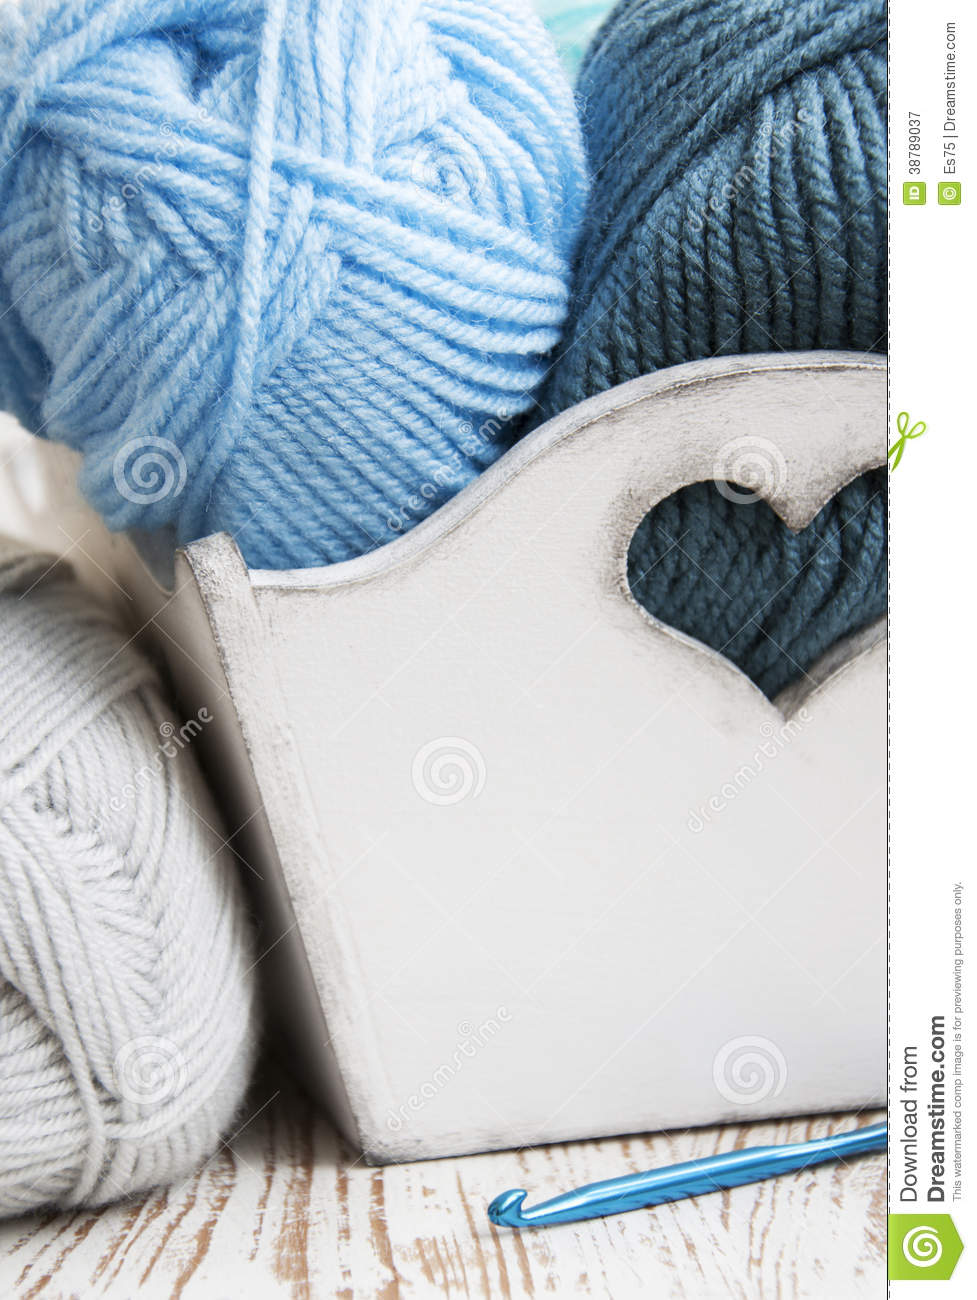 Crochet Knitting Yarn : Crochet Hook And Knitting Yarn Stock Photo - Image: 38789037